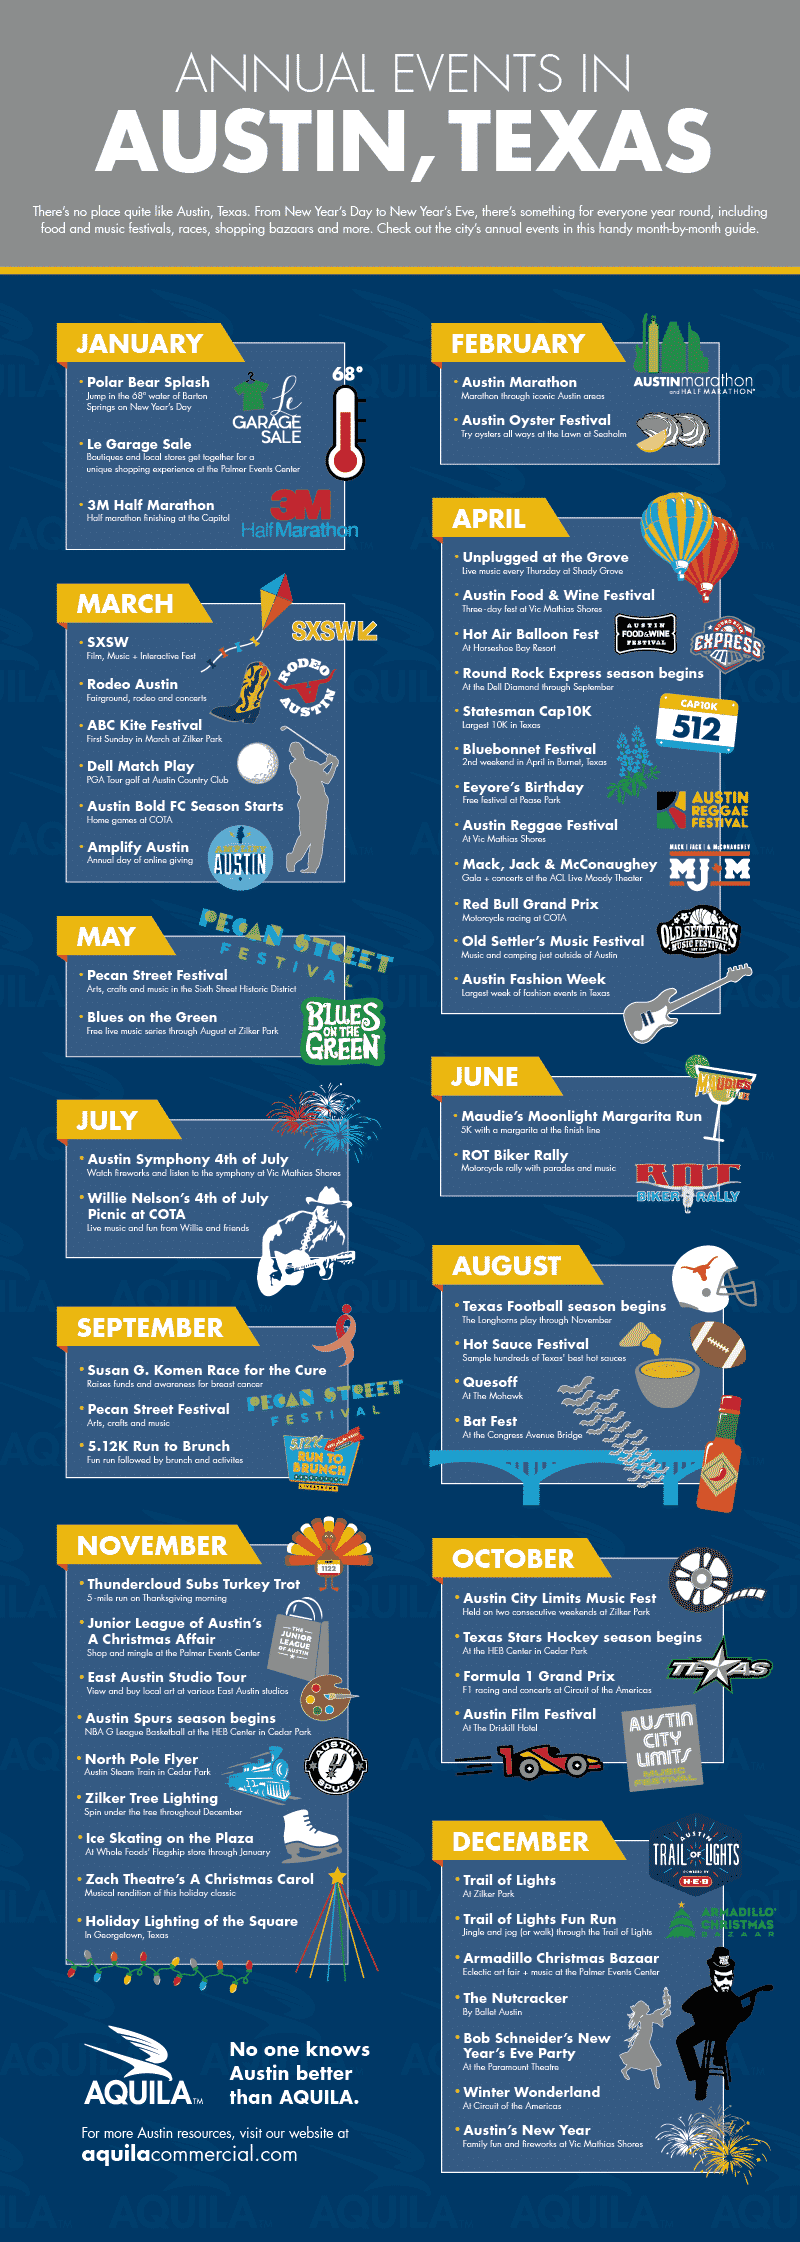 AQUILA-Austin-Culture-Events-Infographic-2020